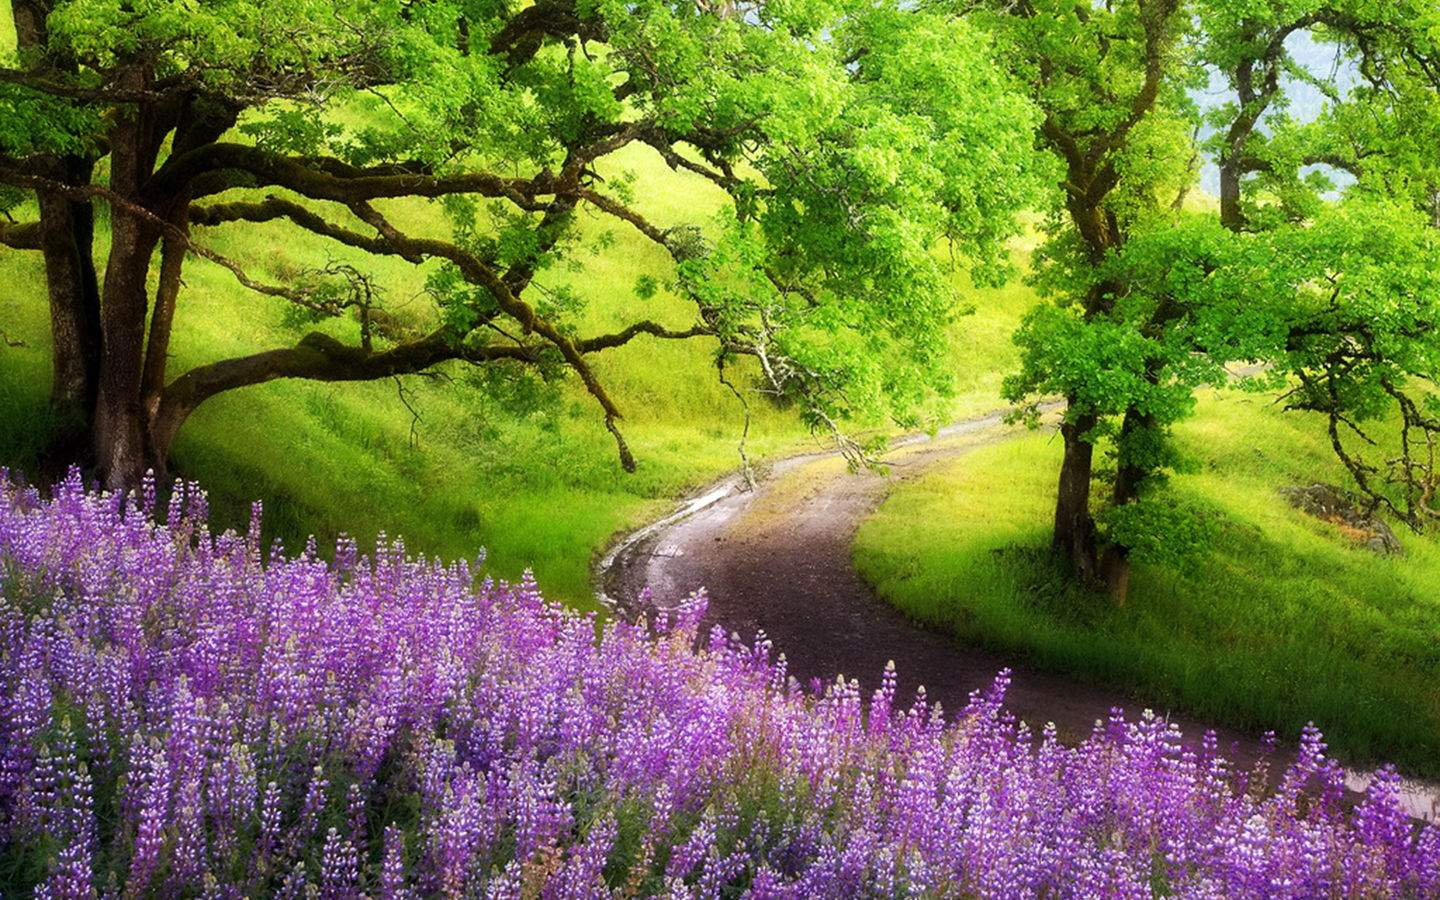 Flower landscape wallpaper wallpapersafari for Flower landscape